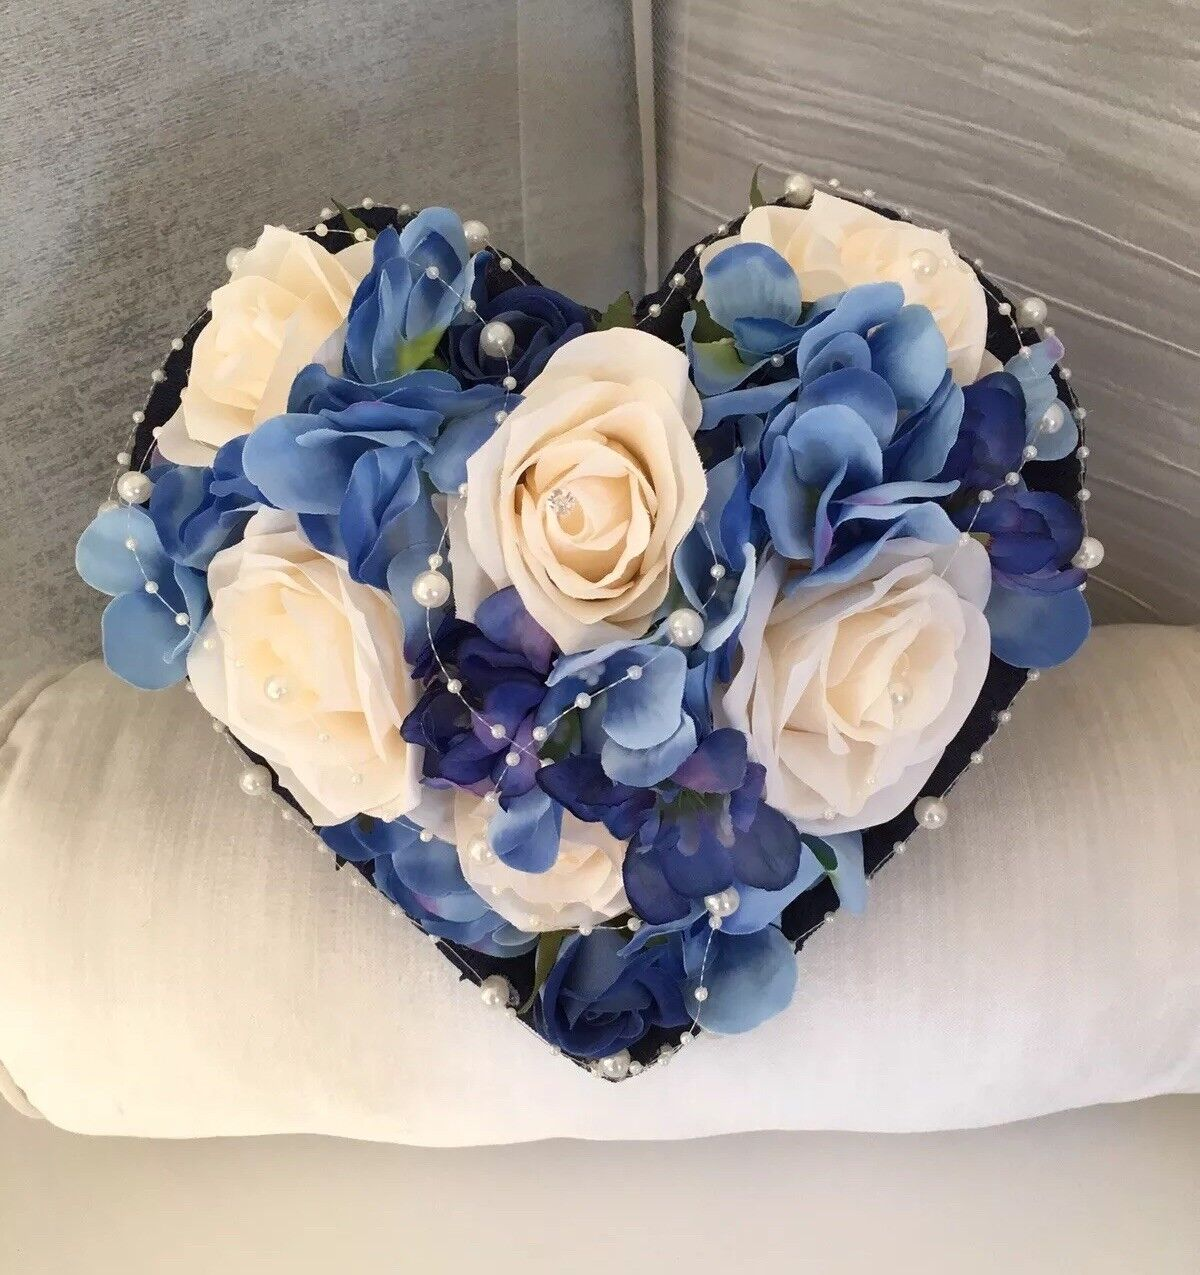 Heart Shaped Wedding Bouquet In Navy Blau And Champa - Bride Wedding Flowers